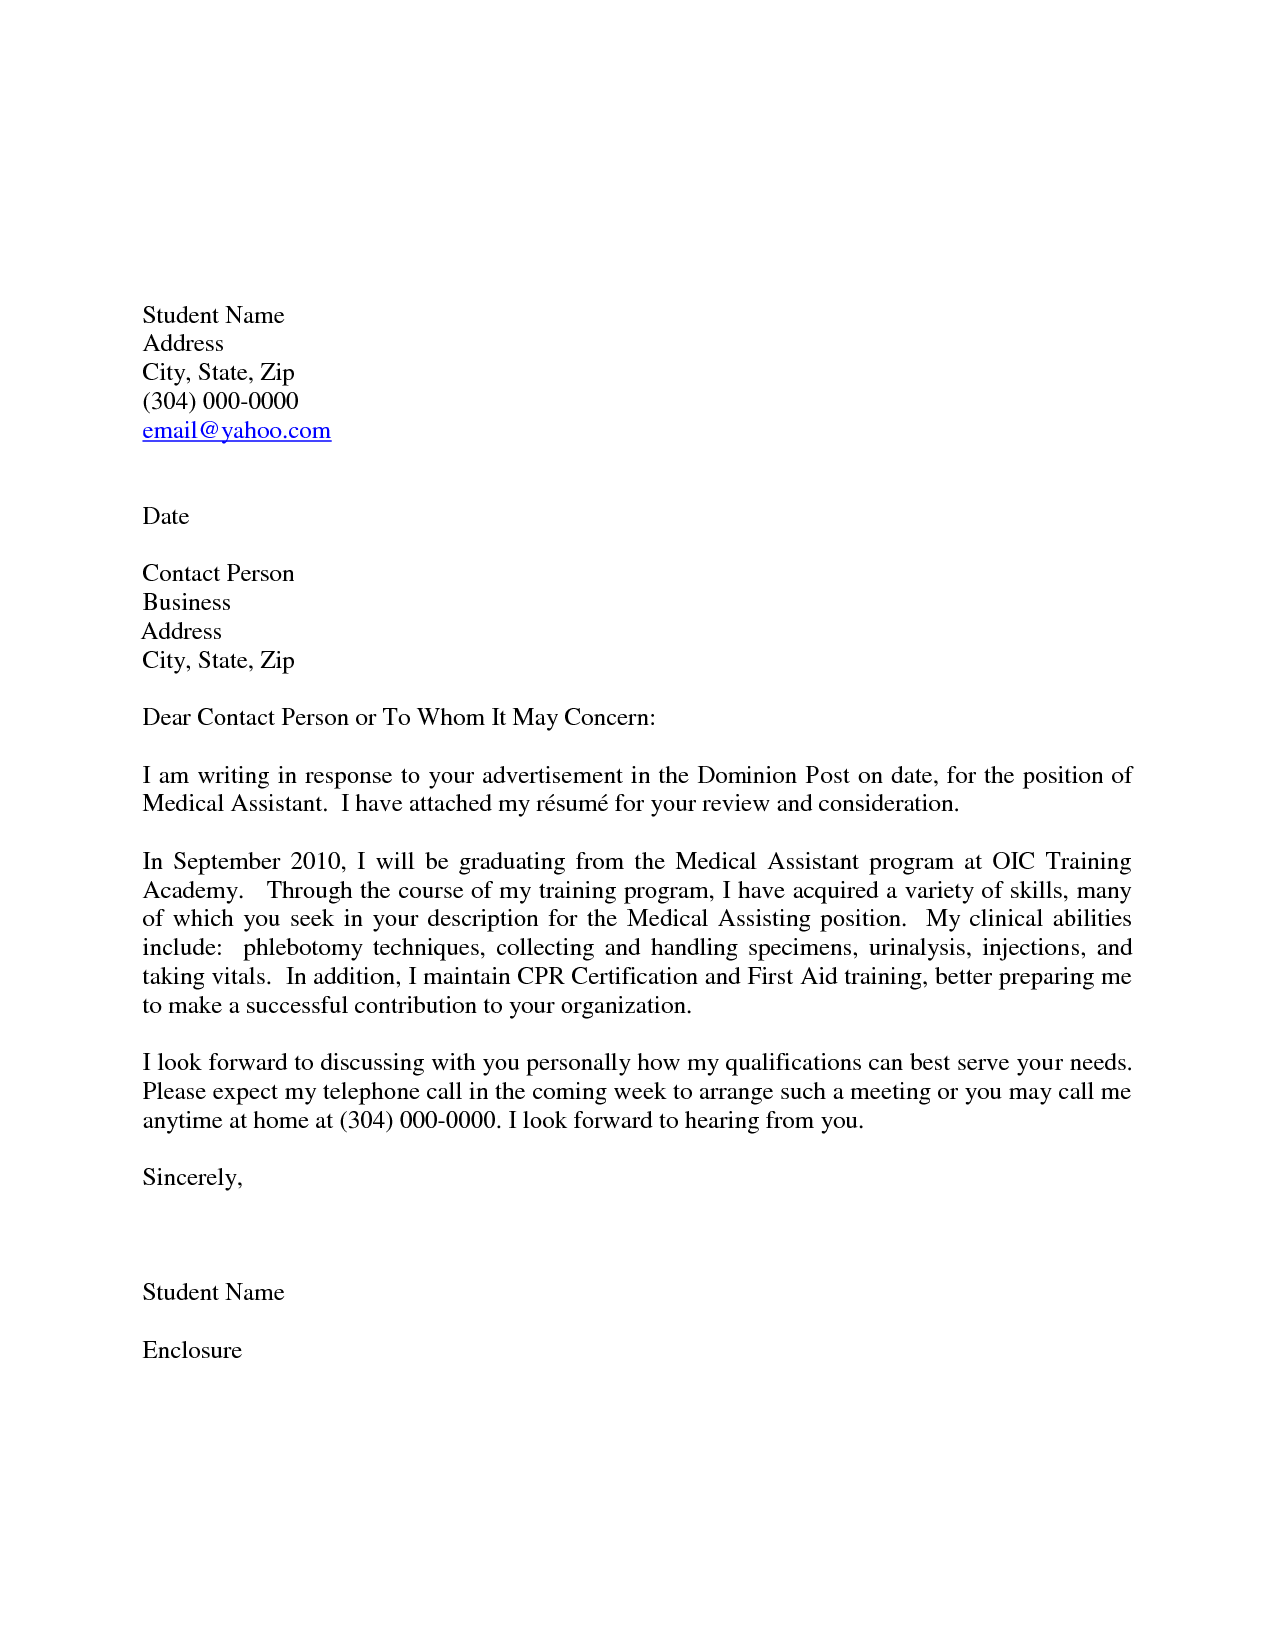 100 Email Resume Cover Letter Sample Sample Email With